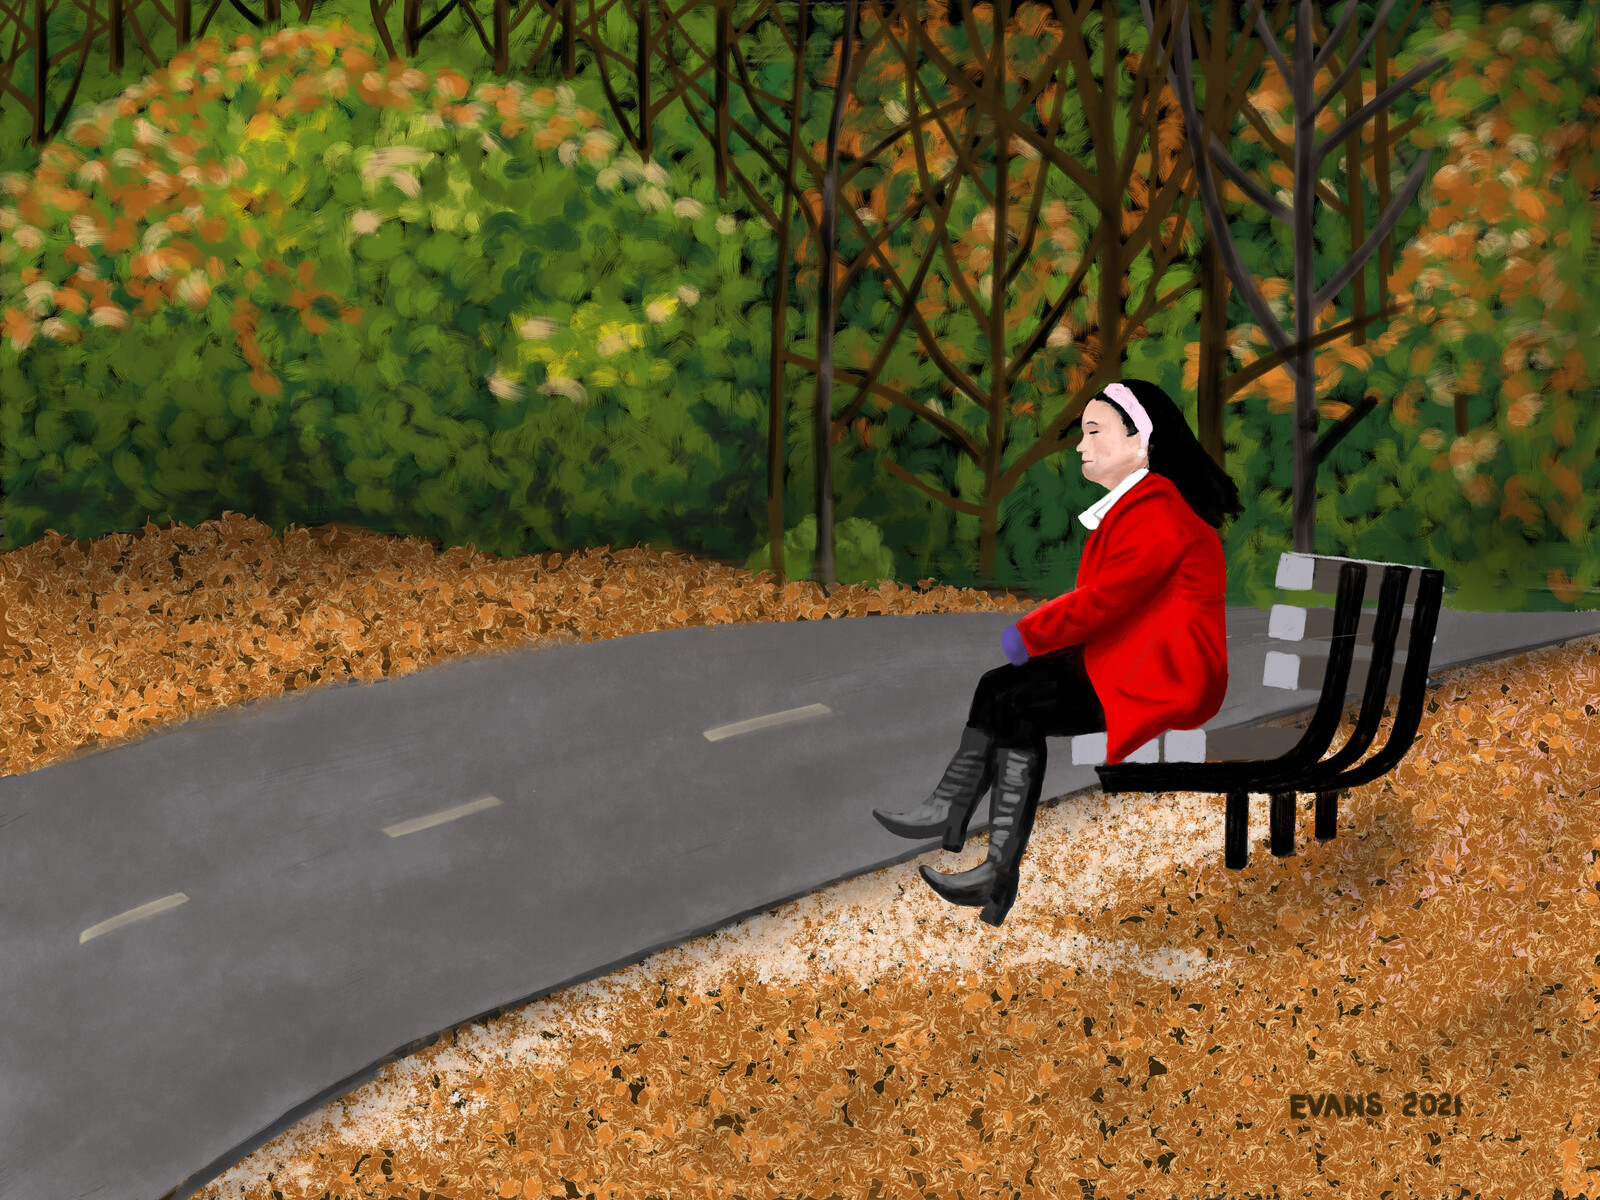 Woman on Bench 2021